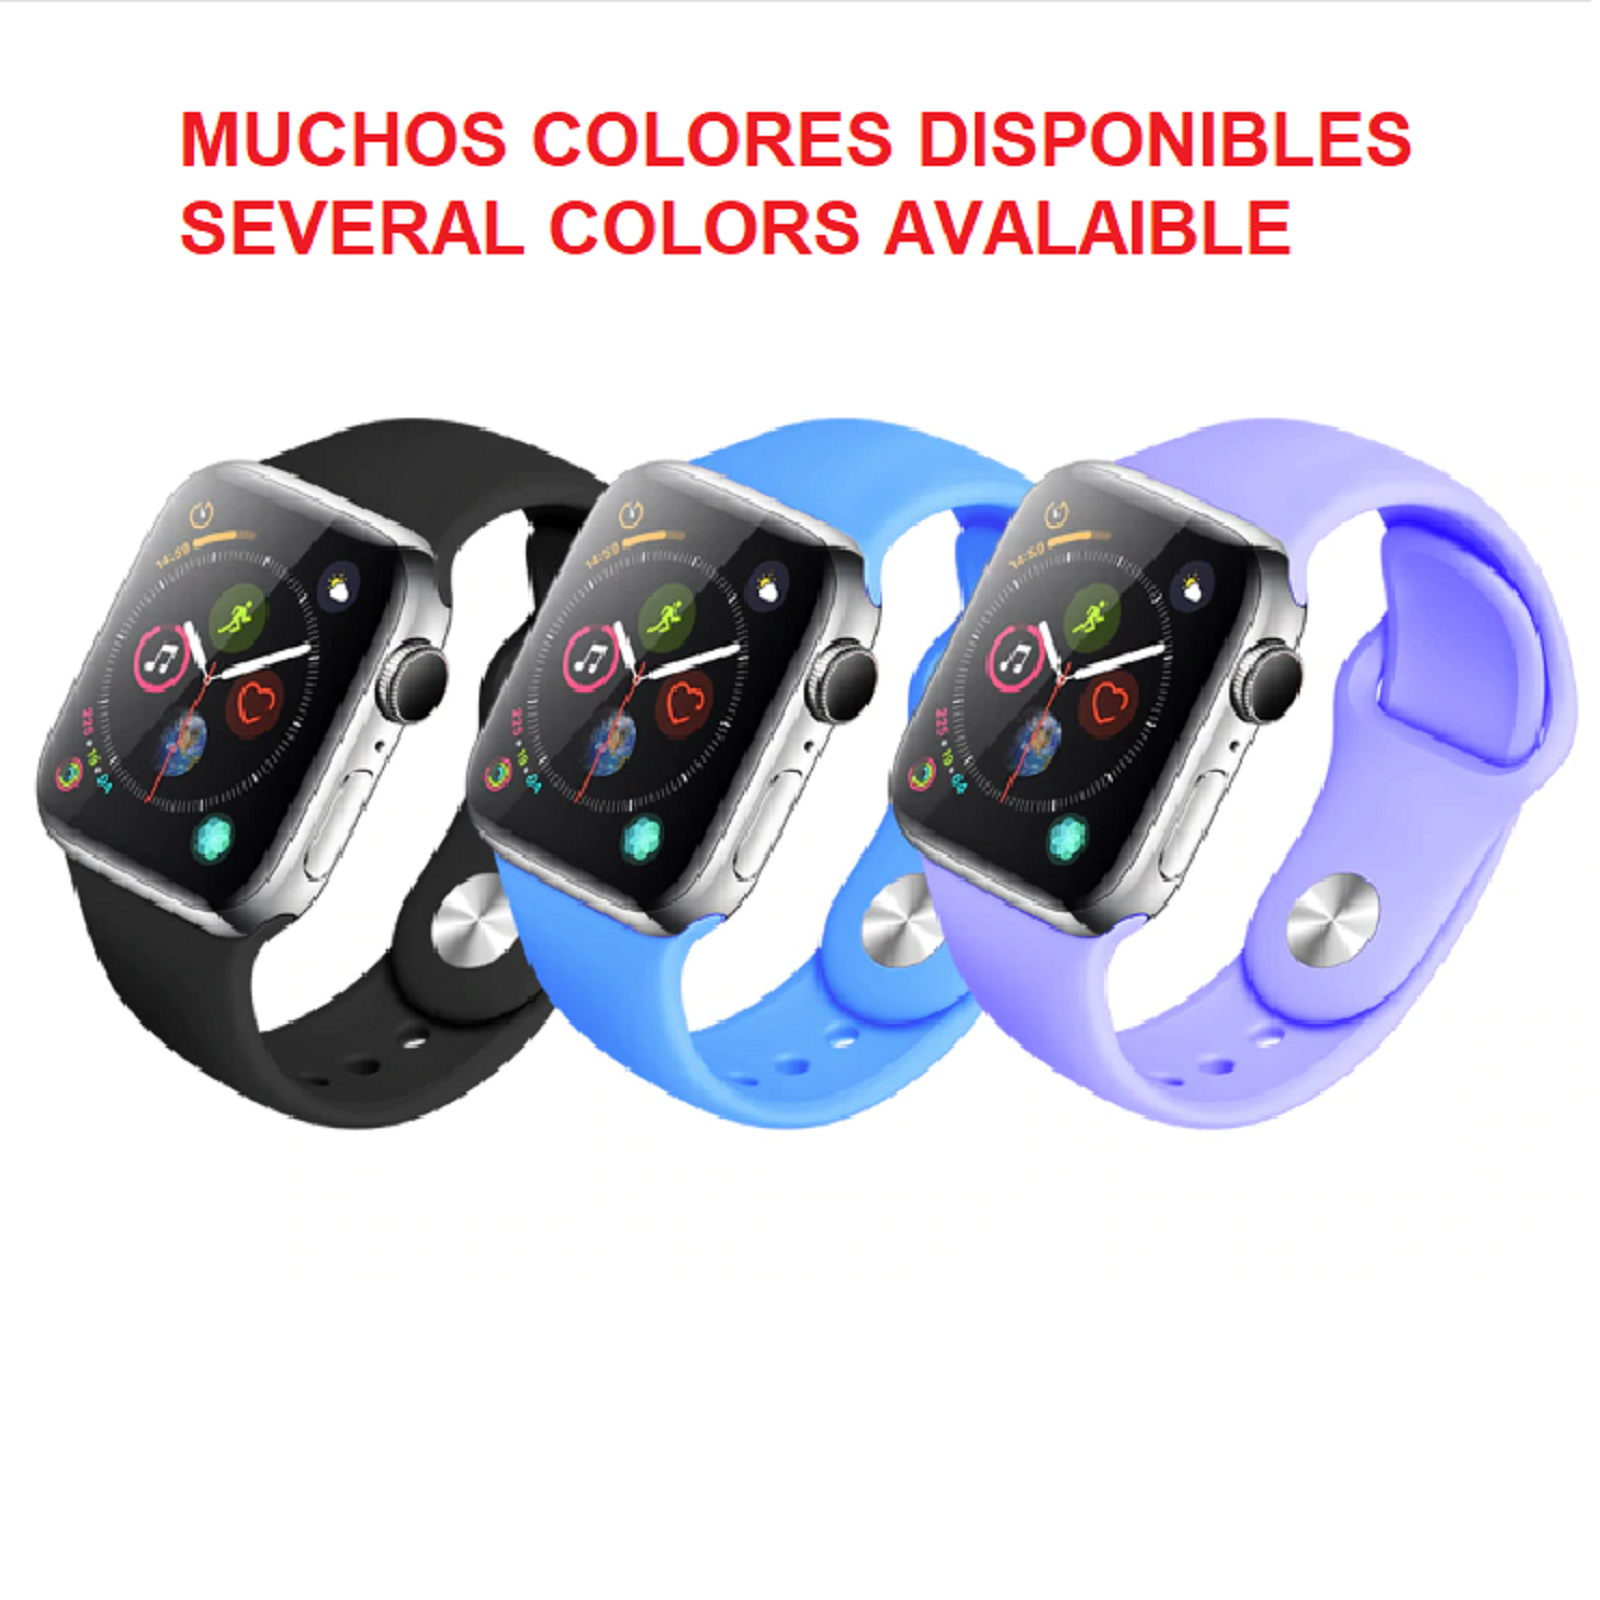 Pulsera Silicona De Recambio COMPATIBLE Con Apple Watch 1 2 3